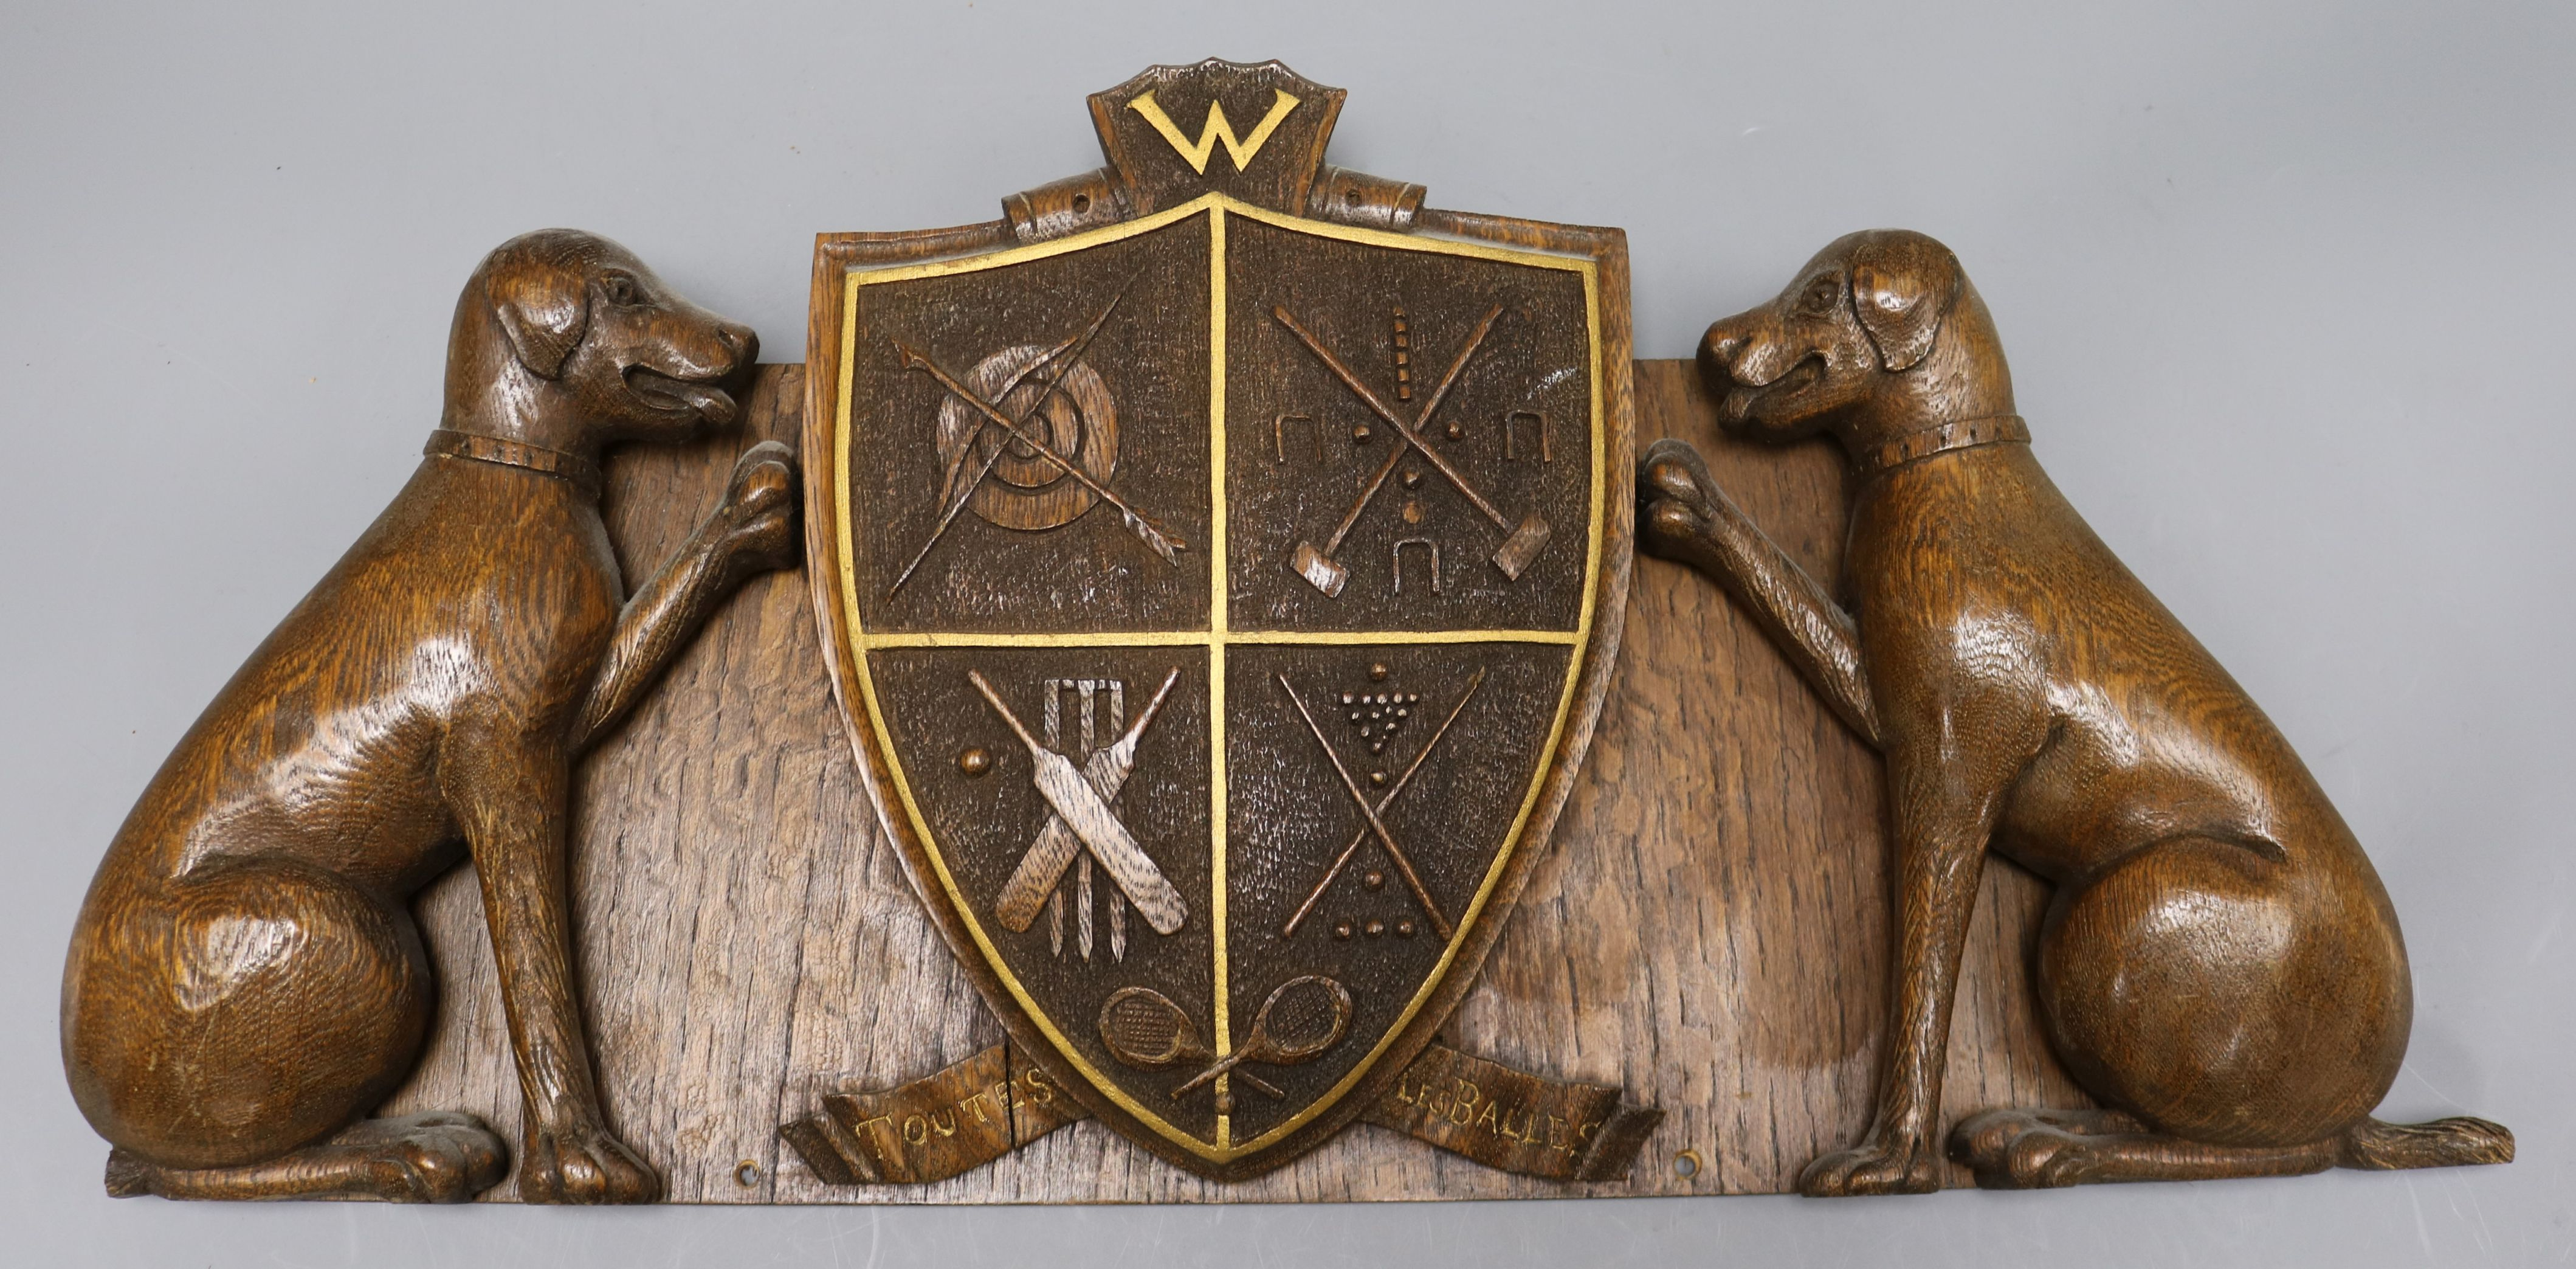 Lot 46 - A carved oak sporting plaque, Withyshaw width 54cm height 26cm